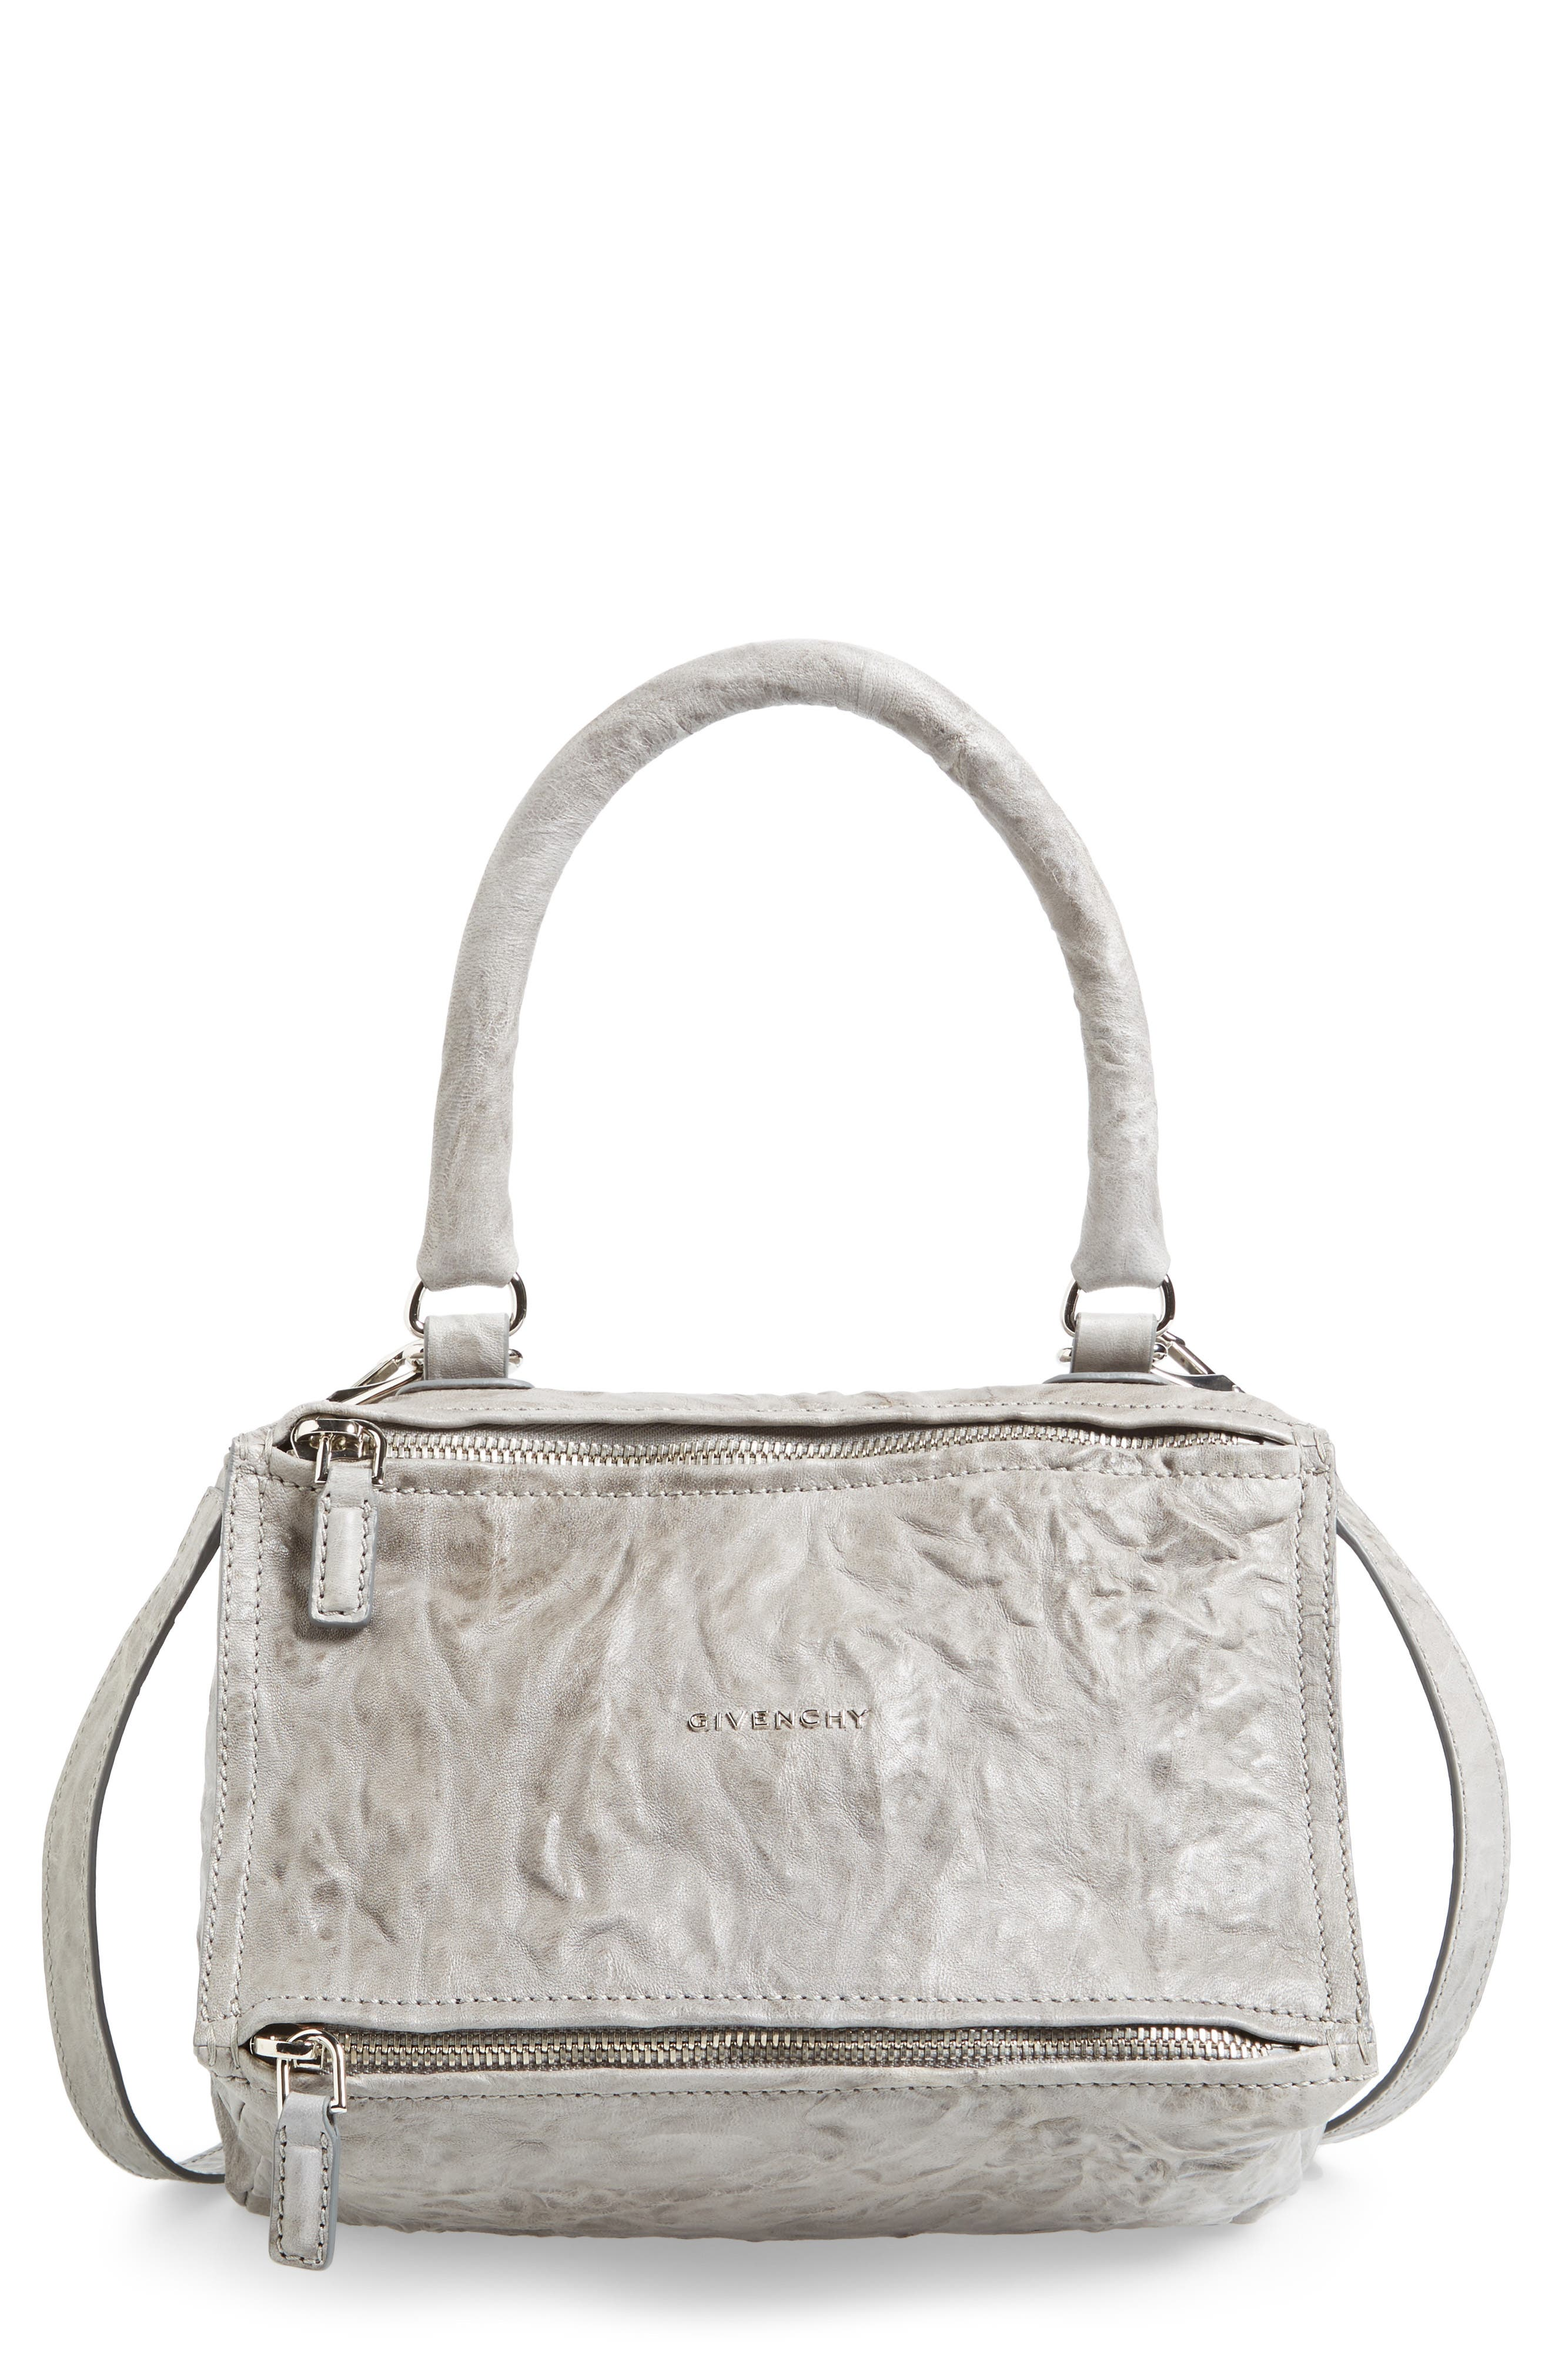 Givenchy 'Small Pepe Pandora' Leather Shoulder Bag